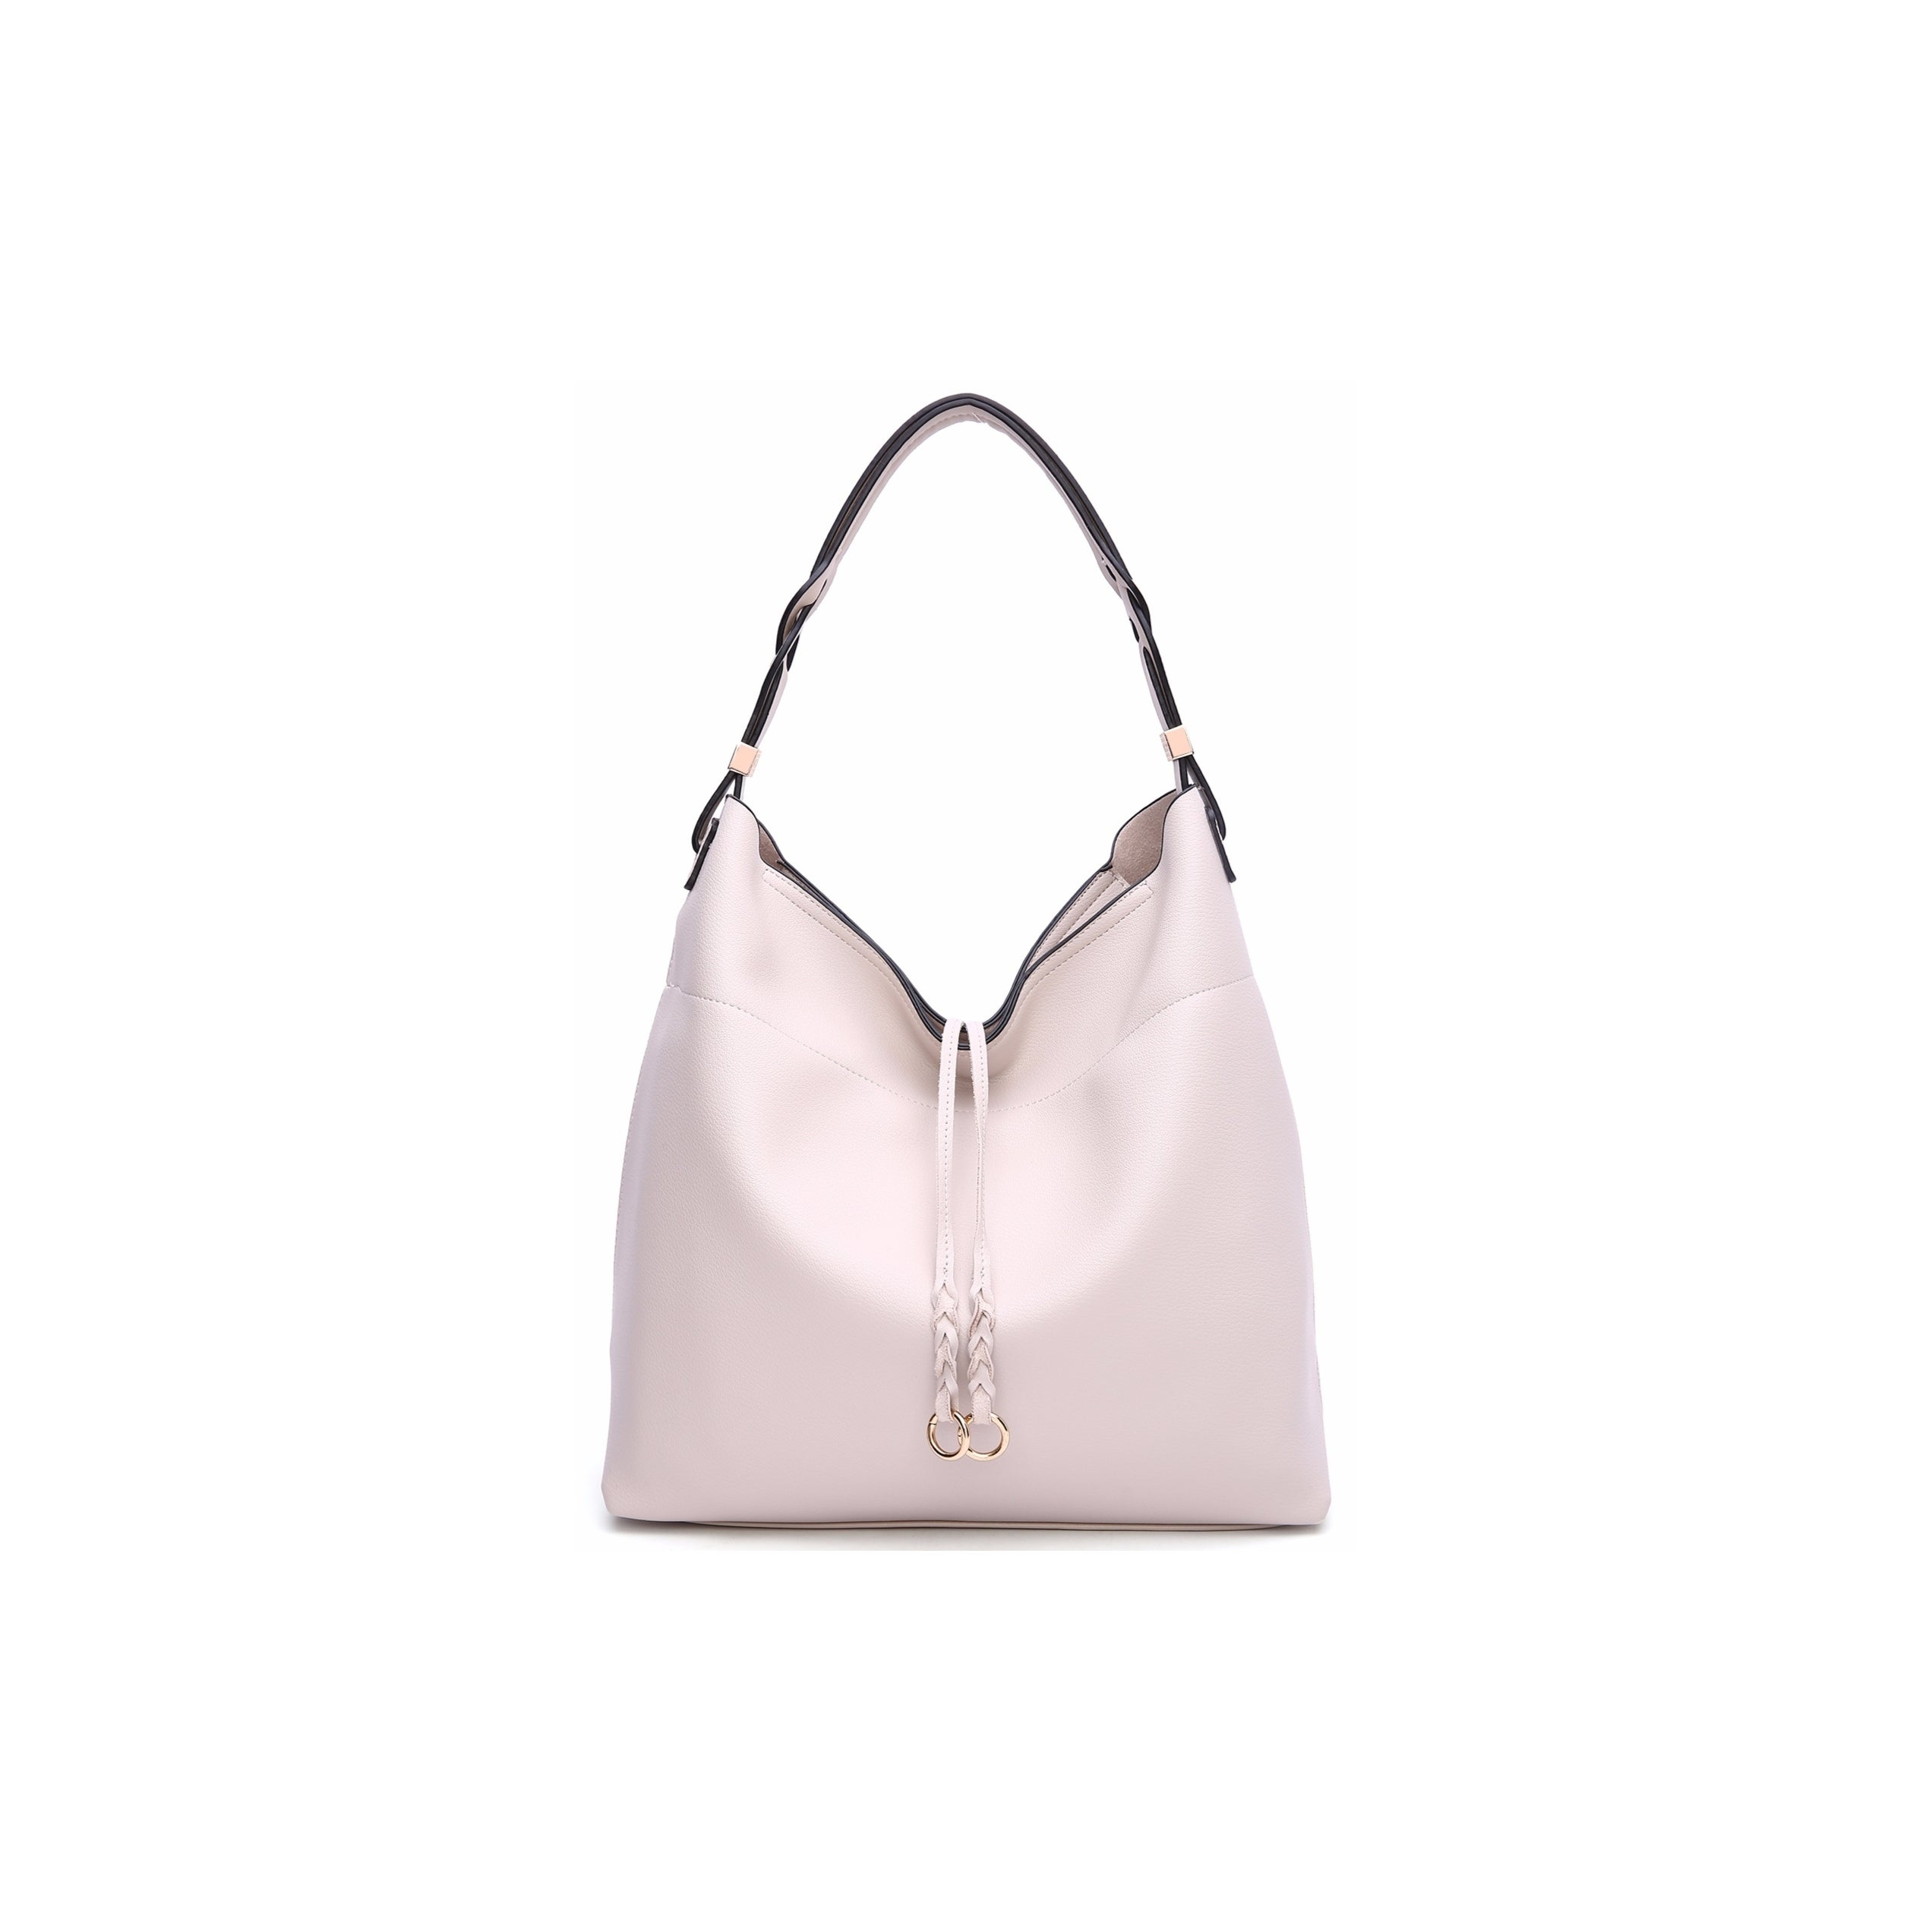 White Handbags Our Best Clothing Shoes Deals Online At